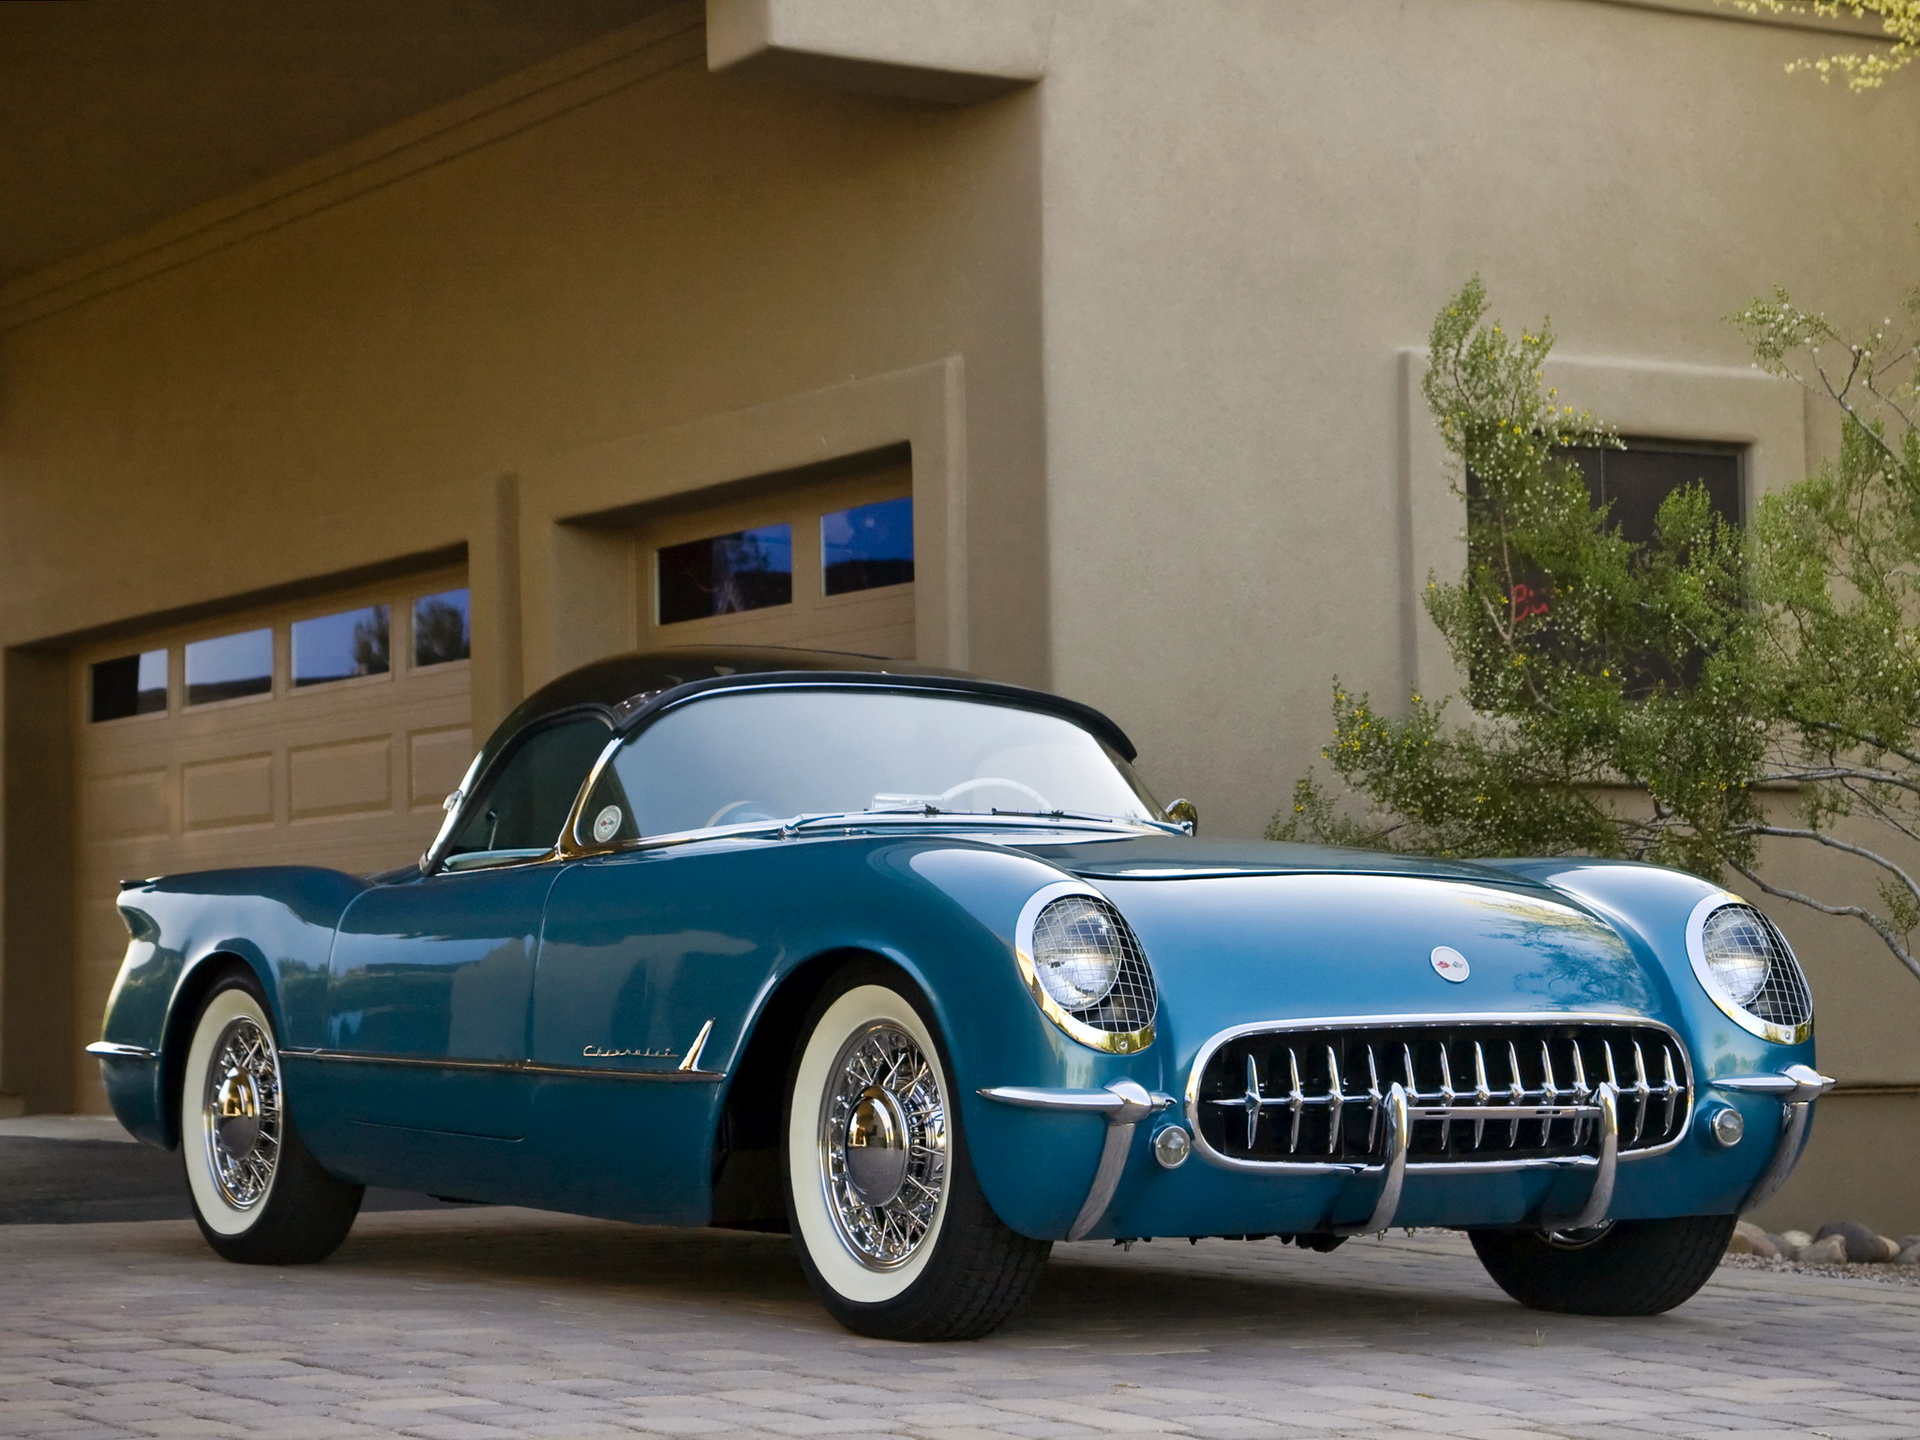 1954 Chevrolet Corvette vehicles cars chevy retro old classic wheels ...